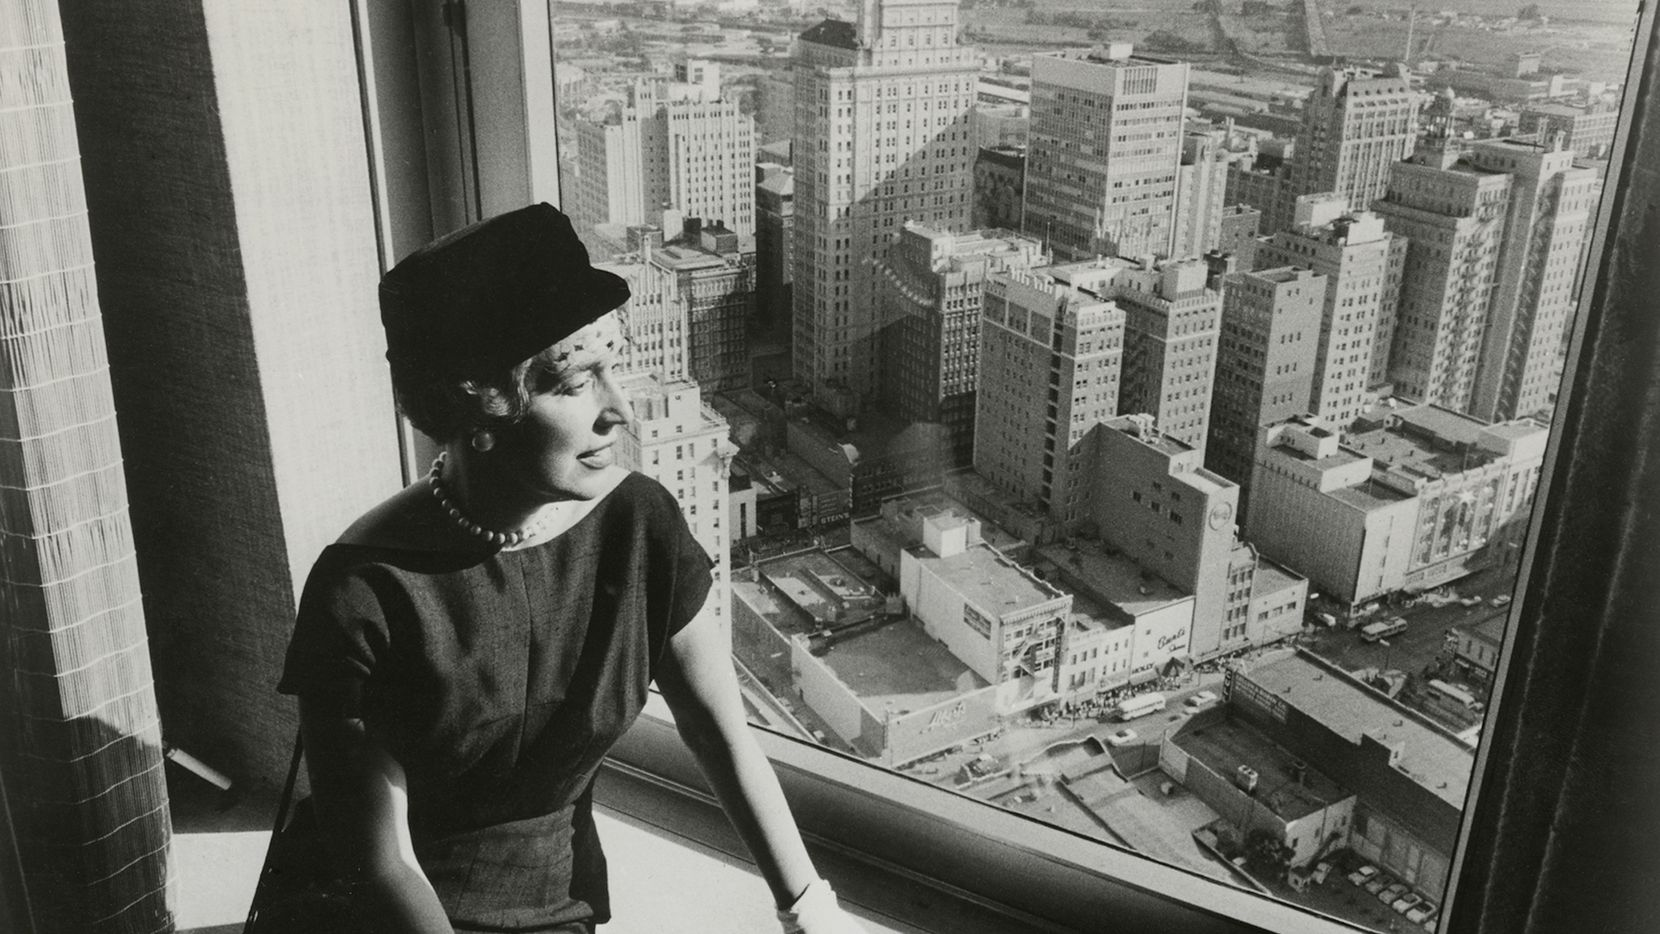 Ebby Halliday, founder of her namesake company, overlooks downtown Dallas in 1956.